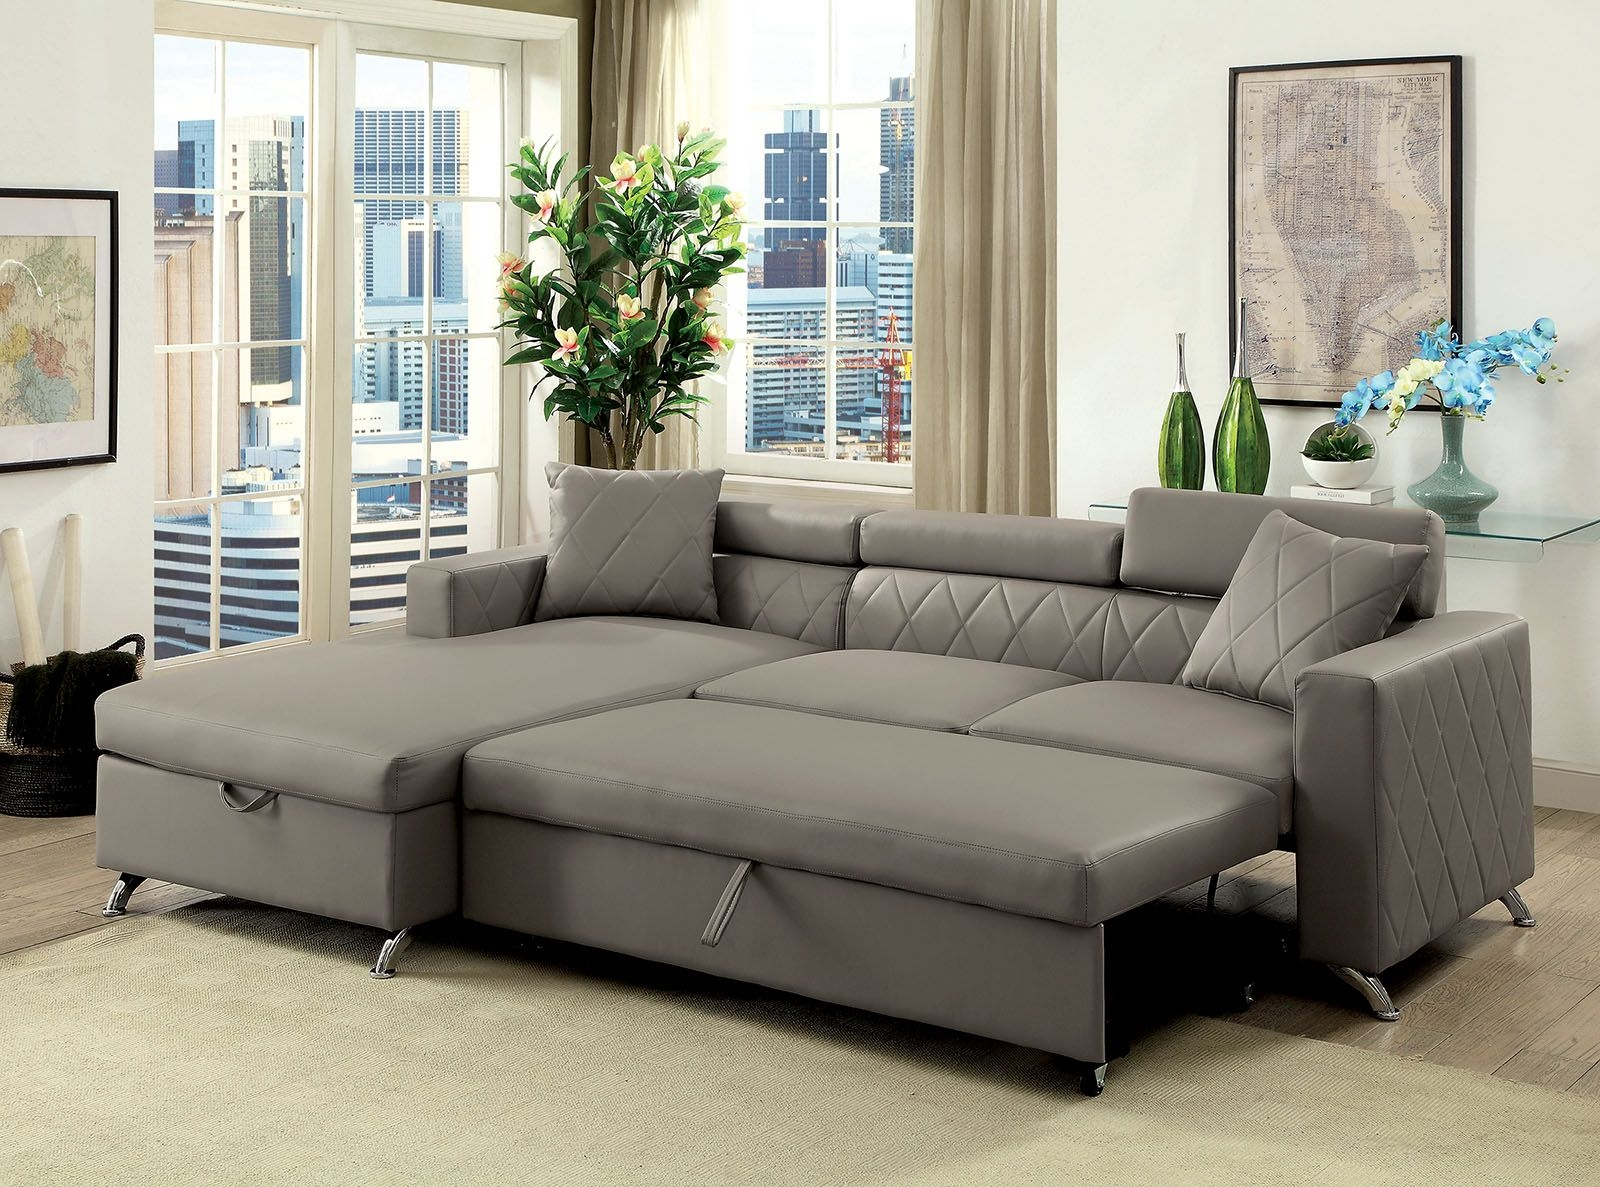 sectional couch with pull out bed you